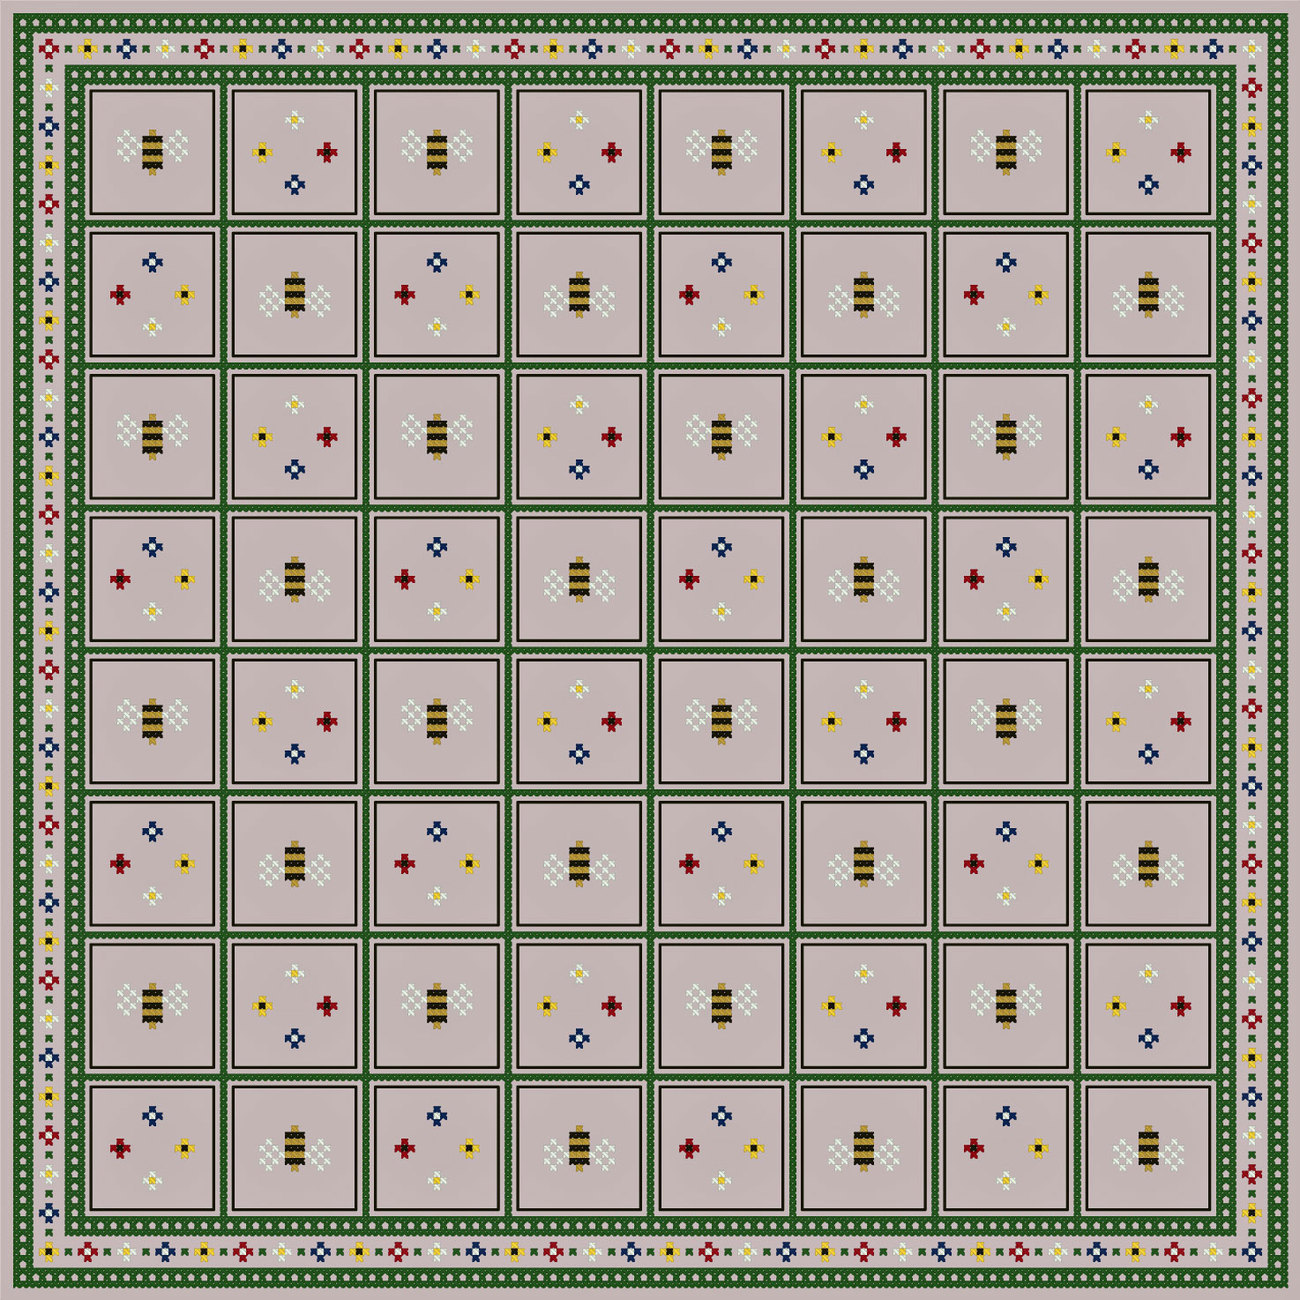 Bees and flowers gameboard